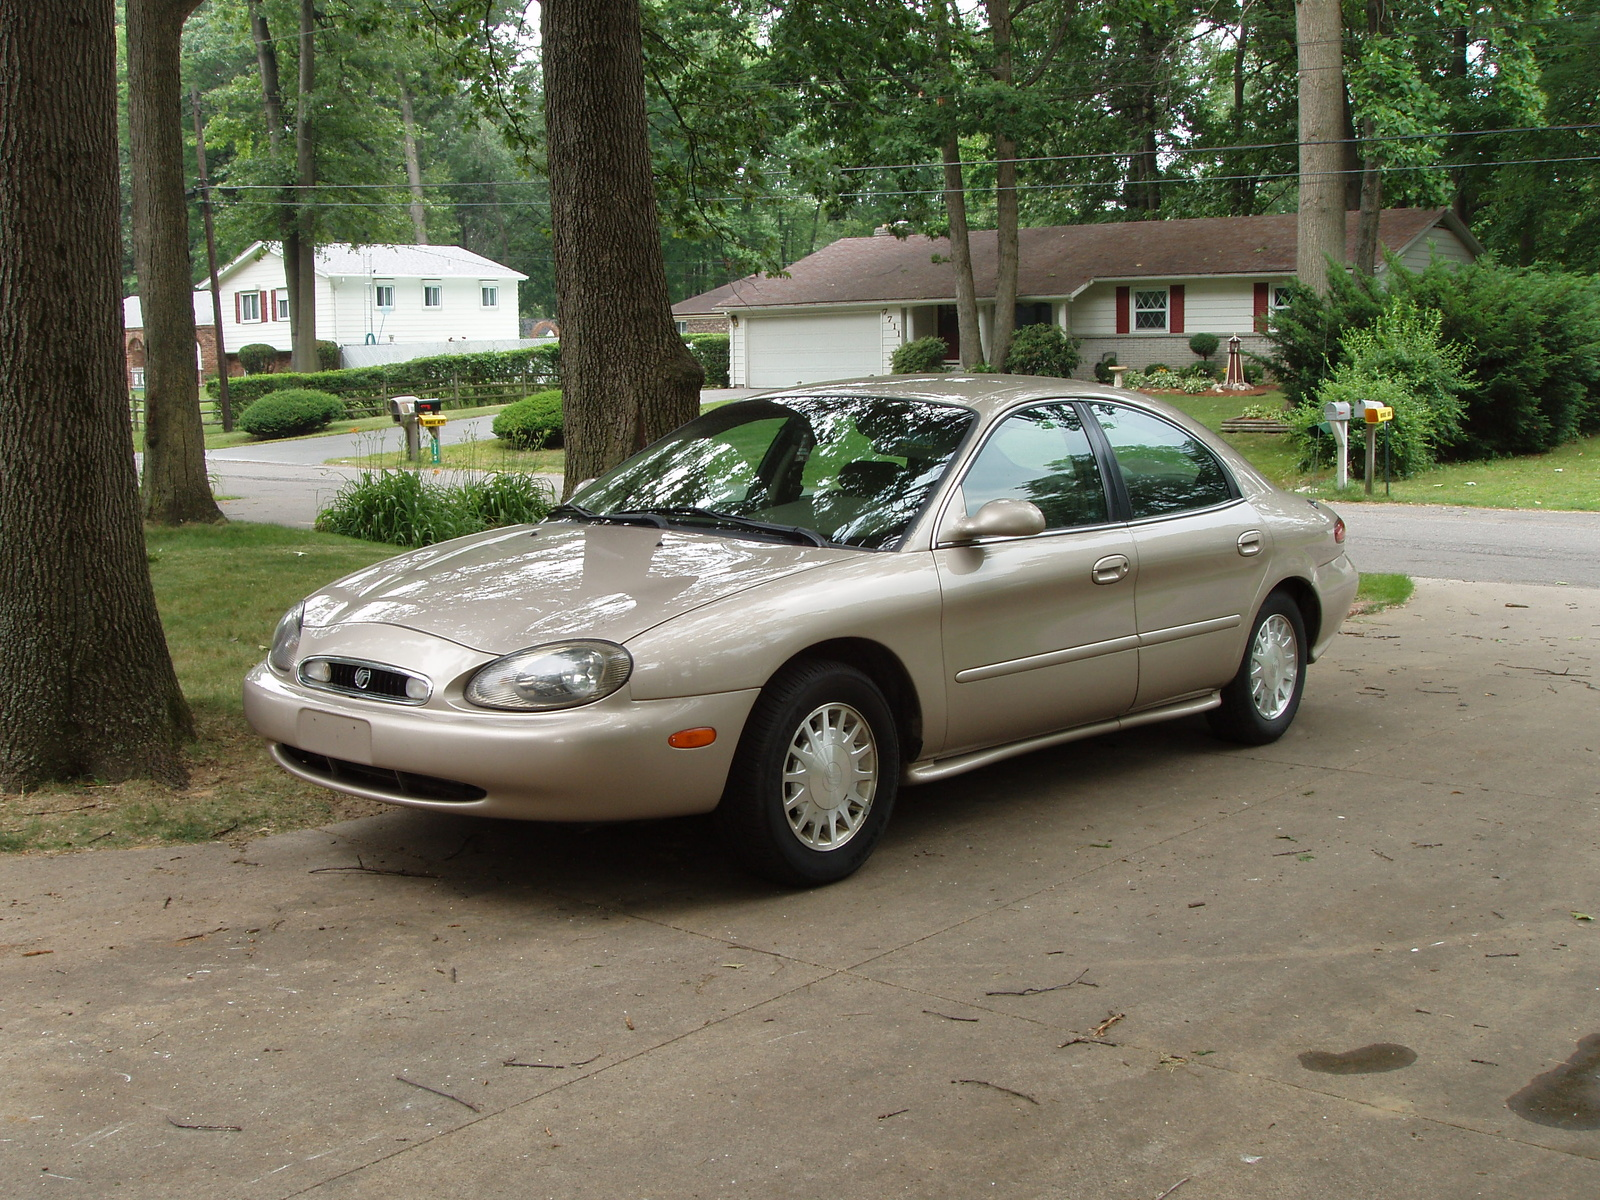 1999 Mercury Sable 4 Dr GS Sedan picture